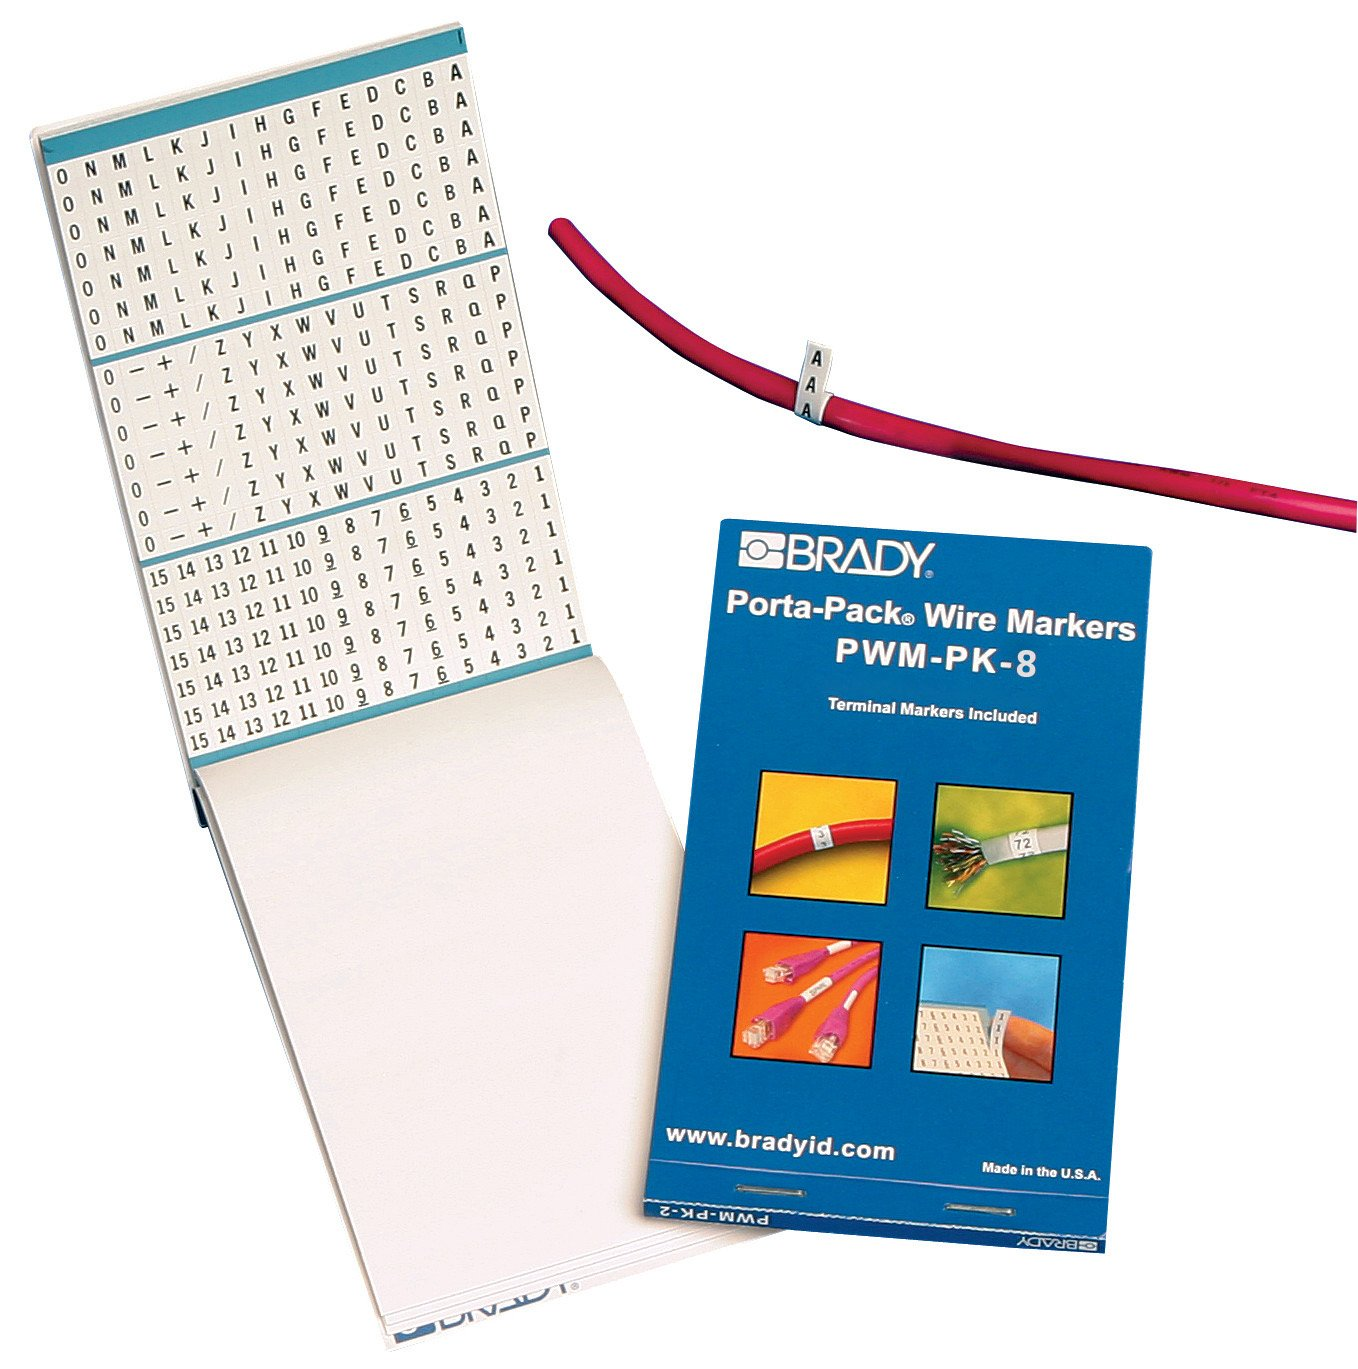 Brady Porta-Pak Wire Markers (PWM-PK-8) - Black on White Vinyl Cloth, A through Z, 0 through 90, Symbols (1 Booklet) - 31208